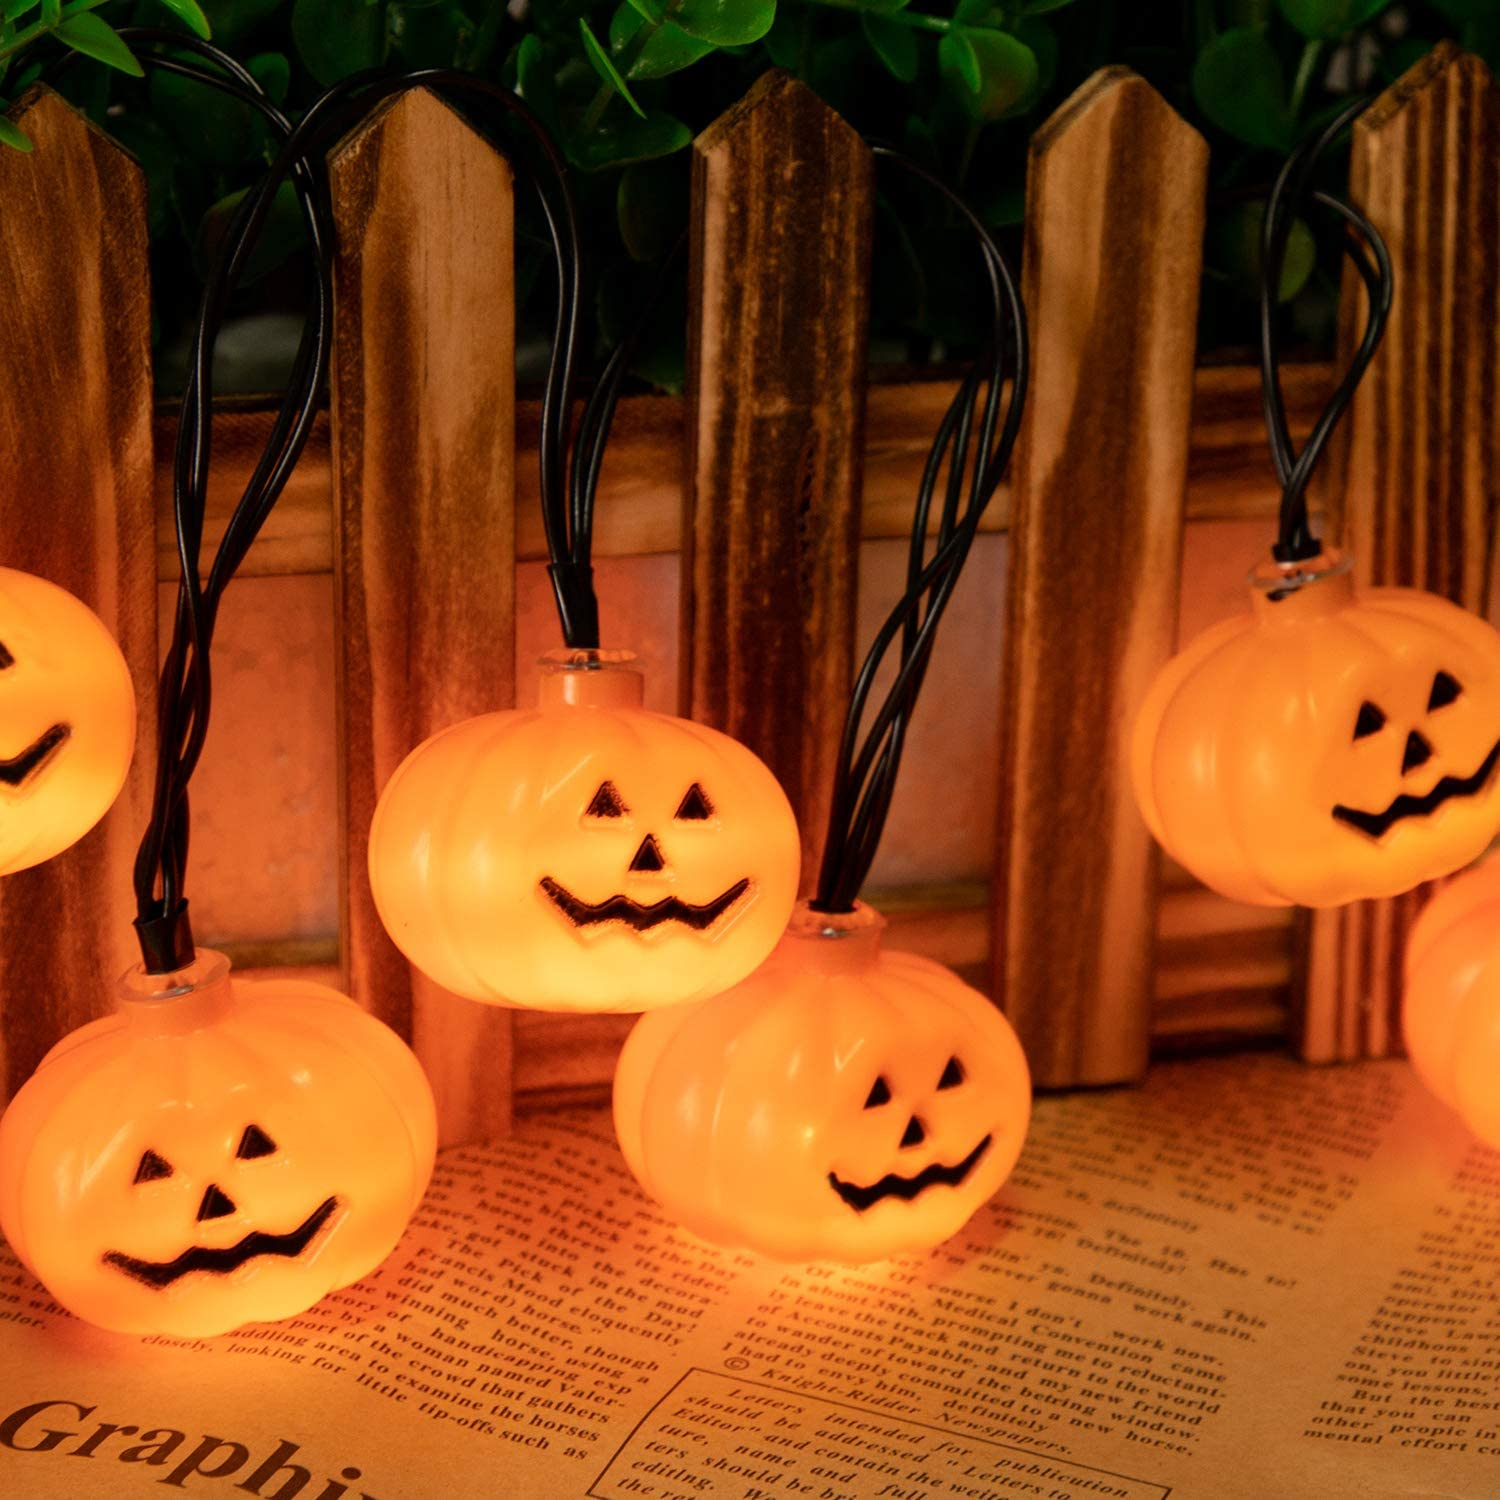 Minetom Halloween String Lights Battery Operated 30 LED 11.5Ft 3D Pumpkin Halloween Lights with 2 Light Modes for Outdoor /& Indoor Halloween Party Decorations